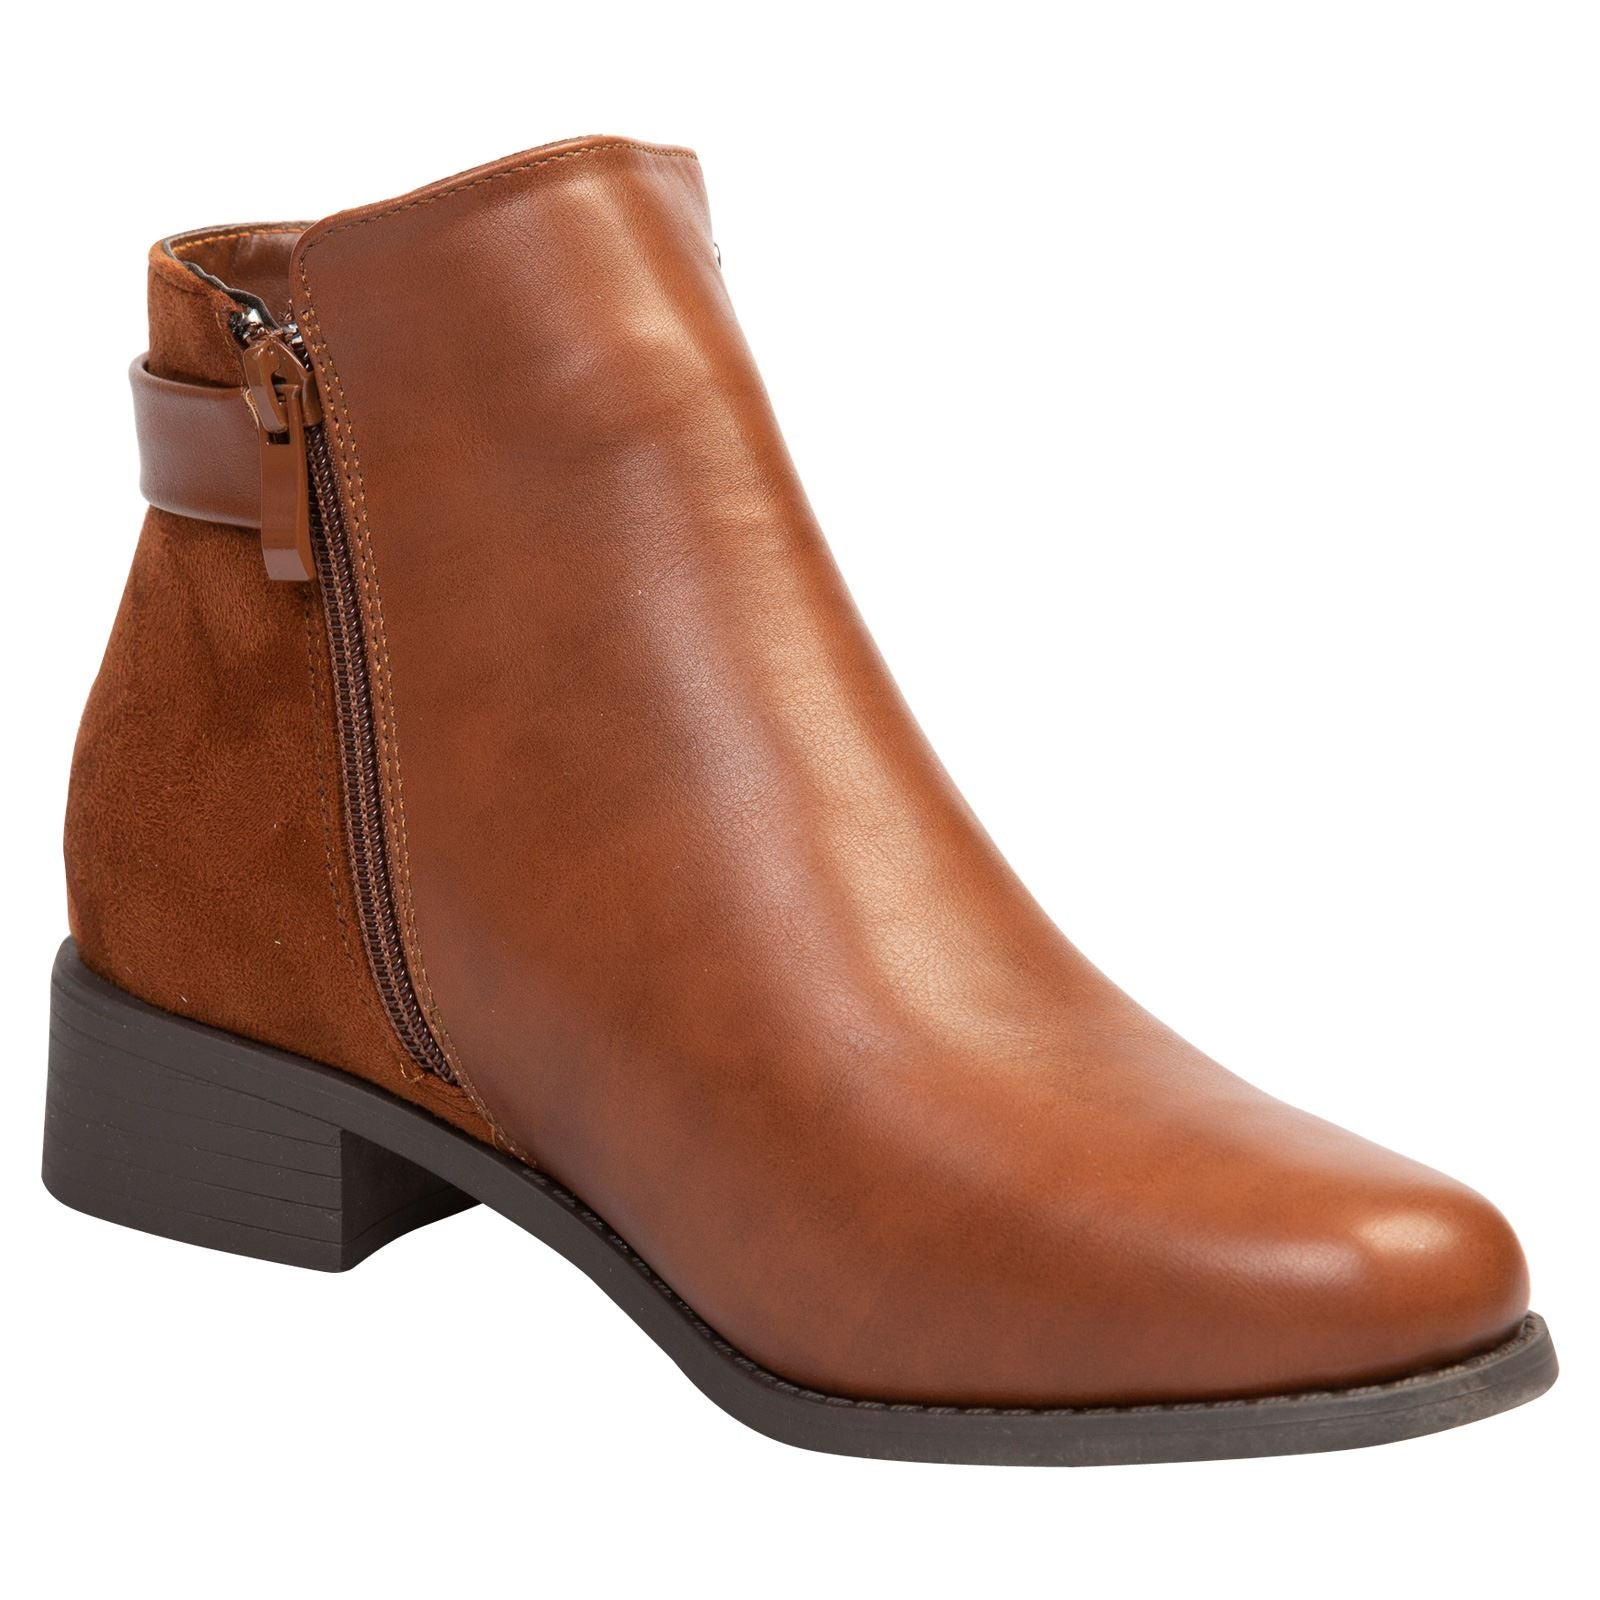 Daleyza Two-toned Ankle Boots in Camel - Feet First Fashion